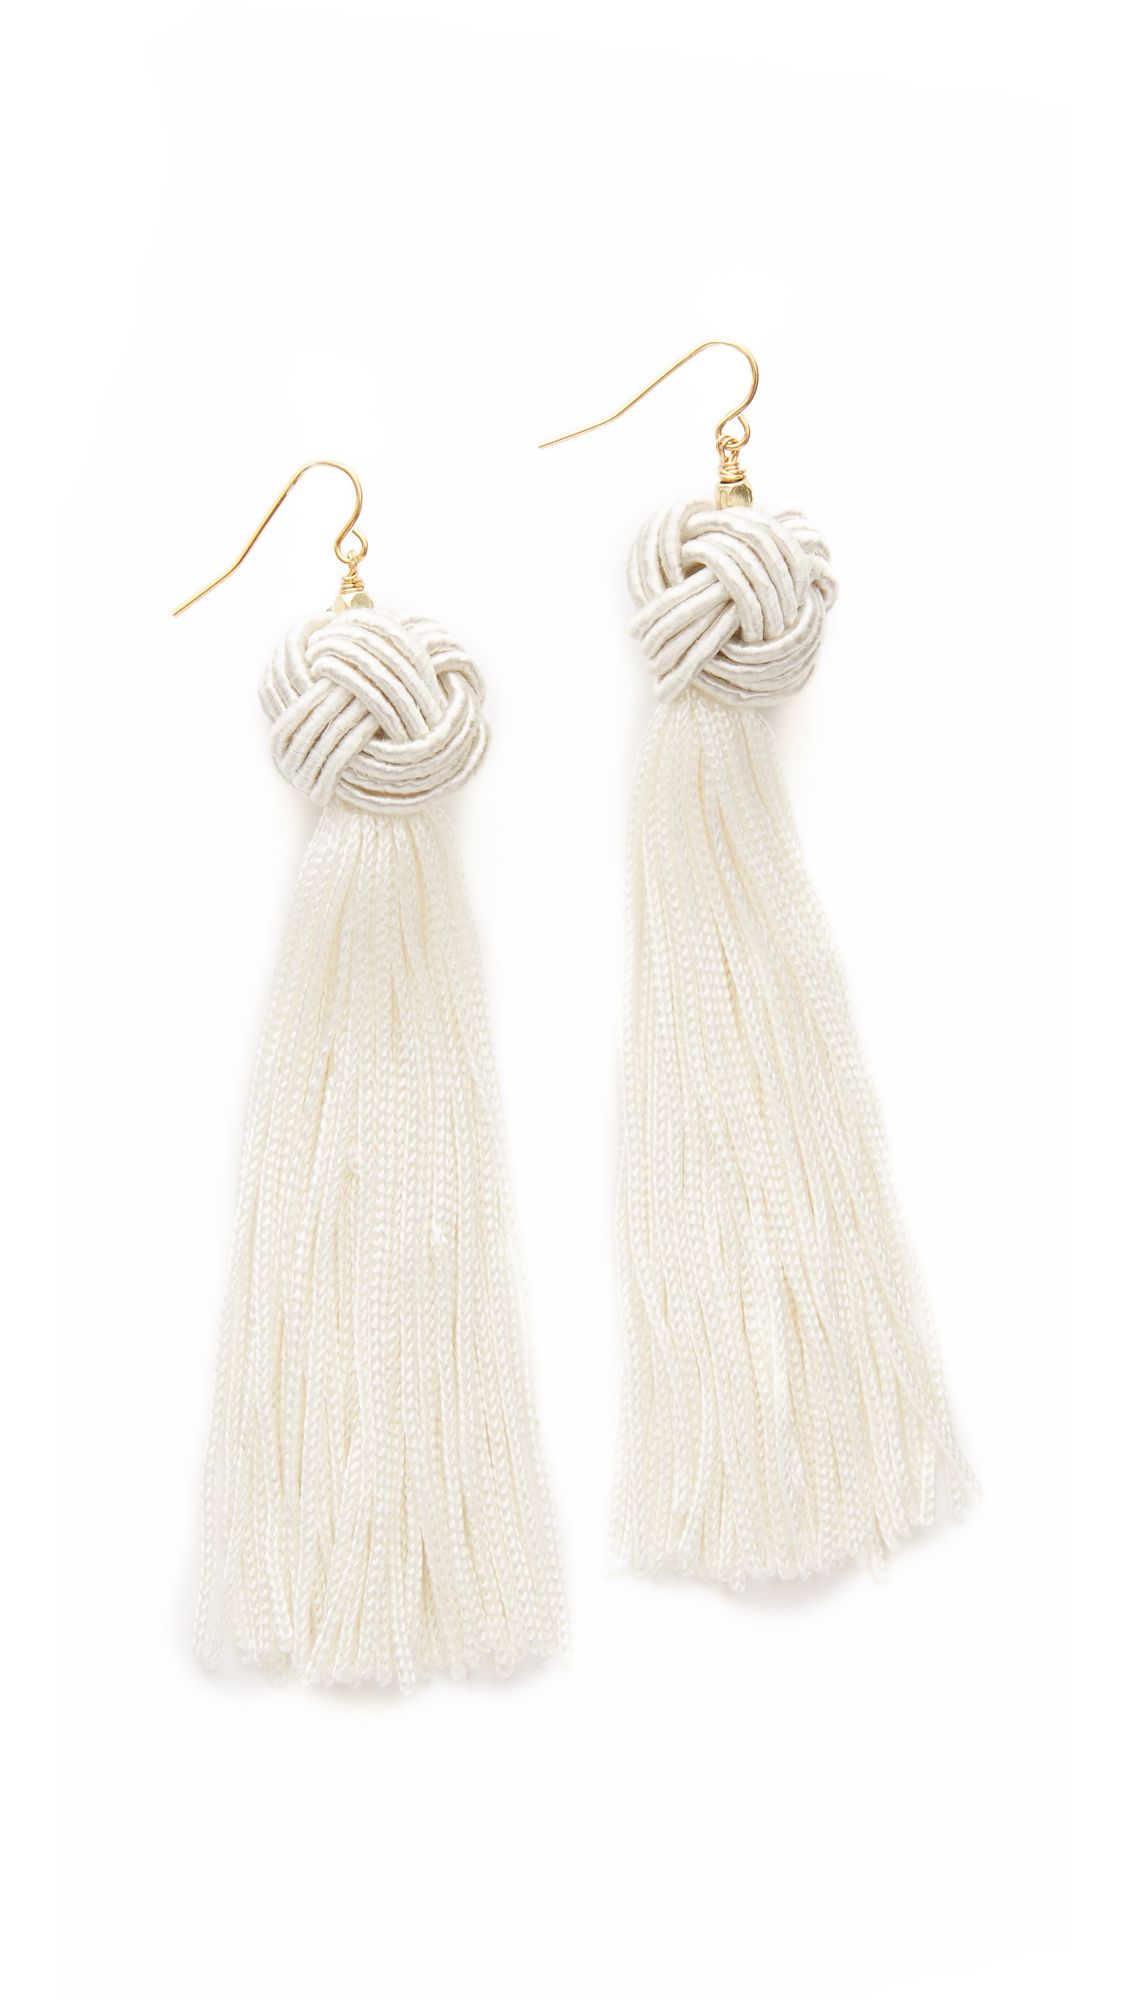 earrings seed rack of beaded tassel tassle camuto nordstrom image product vince shop